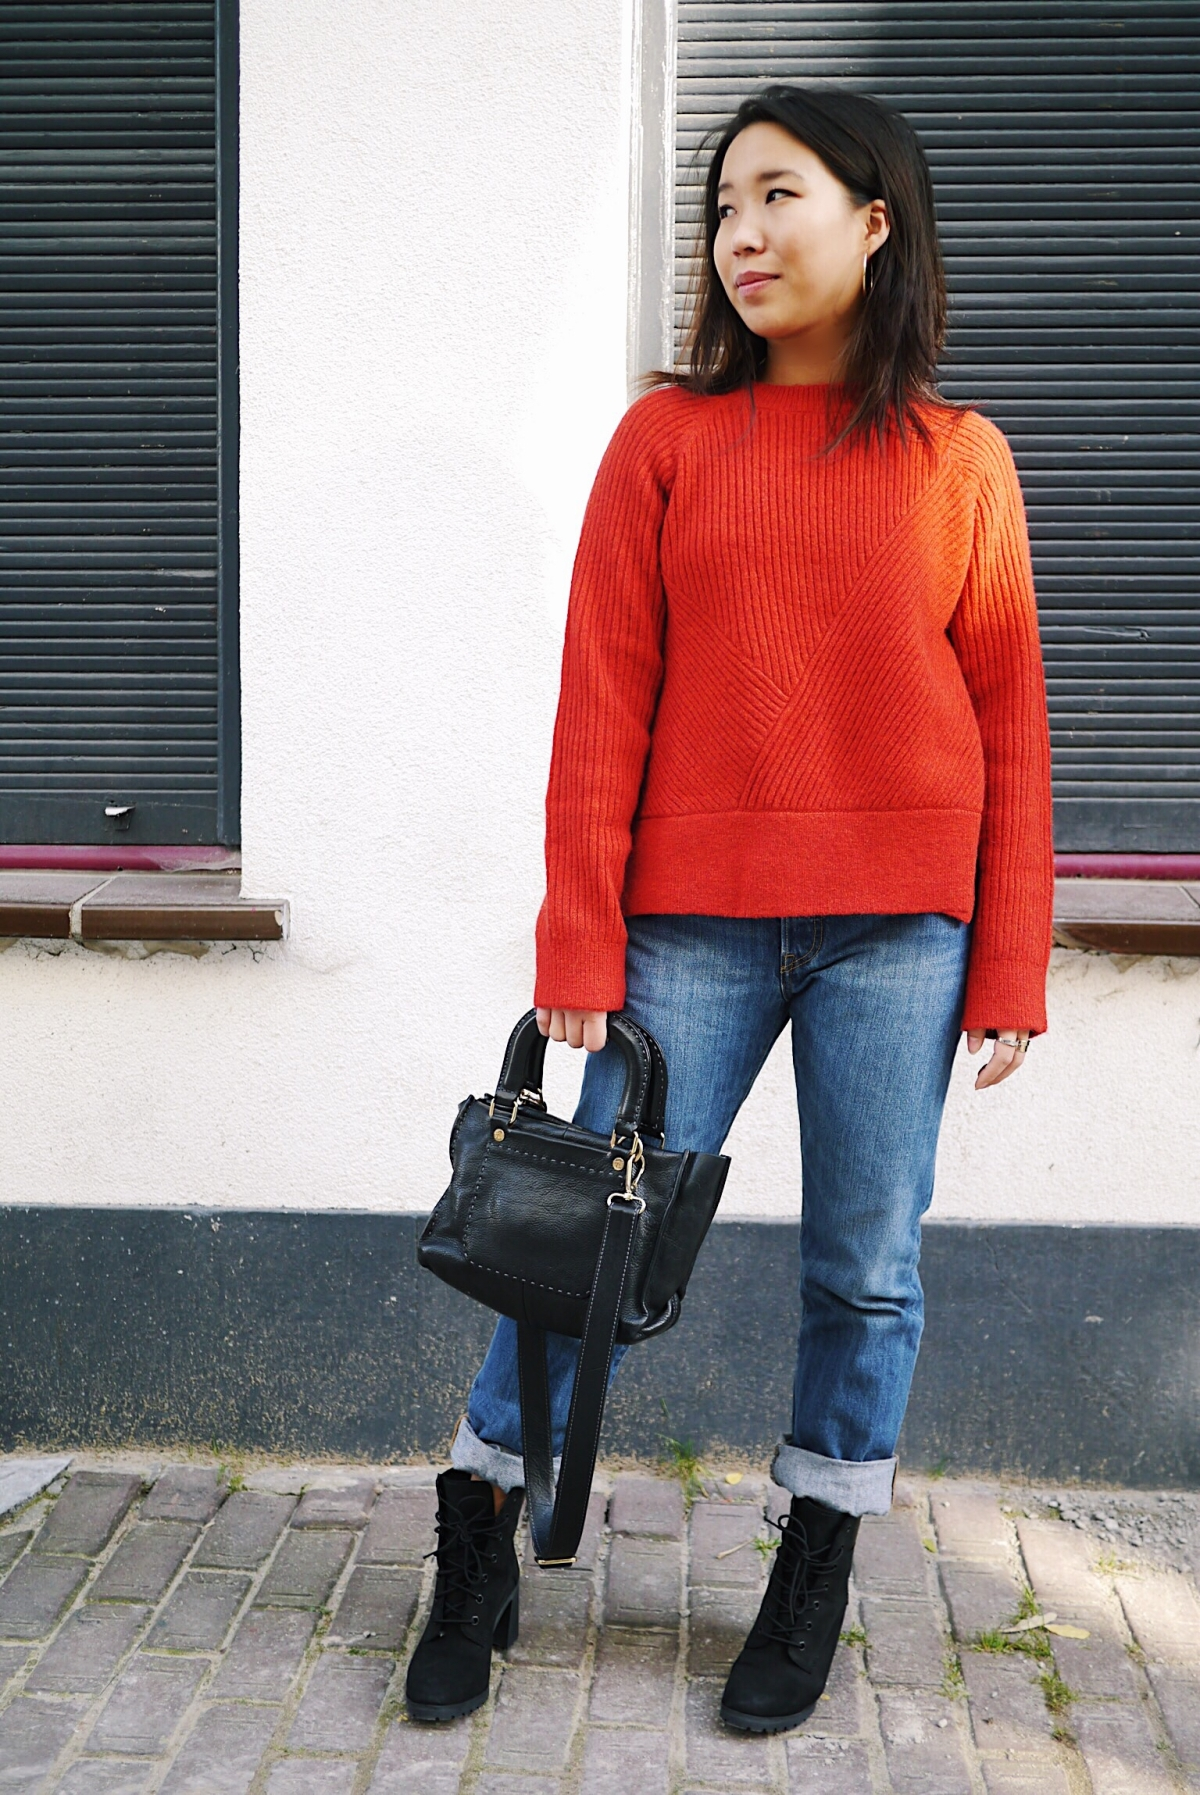 21 - Red Wool Knit - Leisure 4